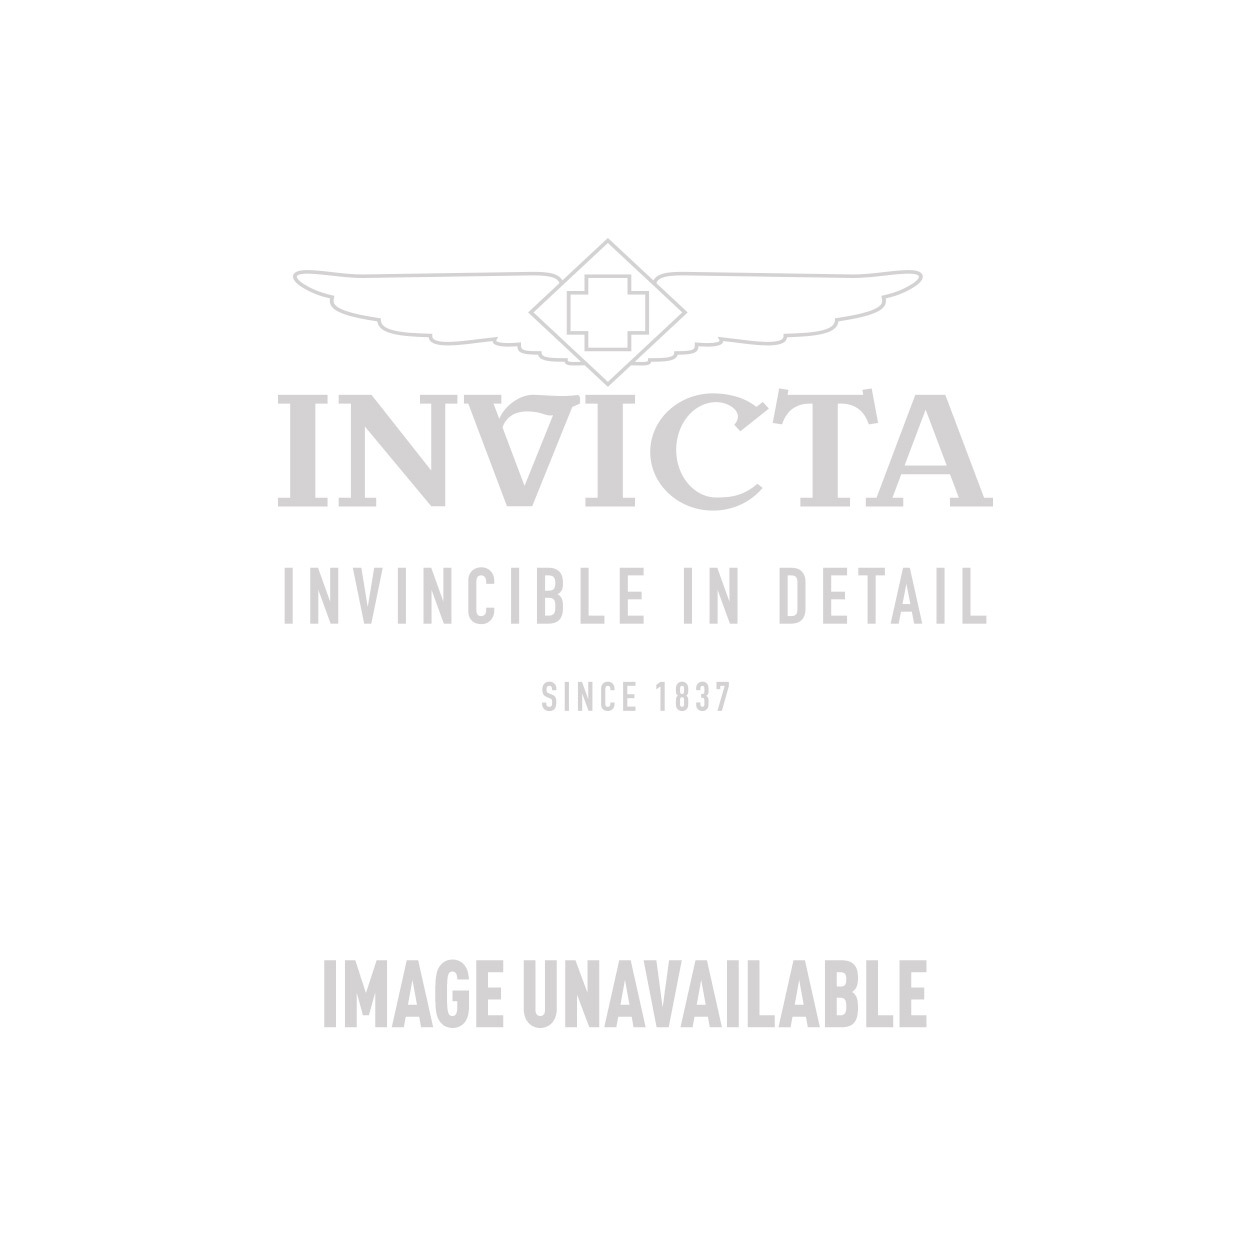 Invicta I-Force Swiss Movement Quartz Watch - Black case with Green tone Leather band - Model 18497